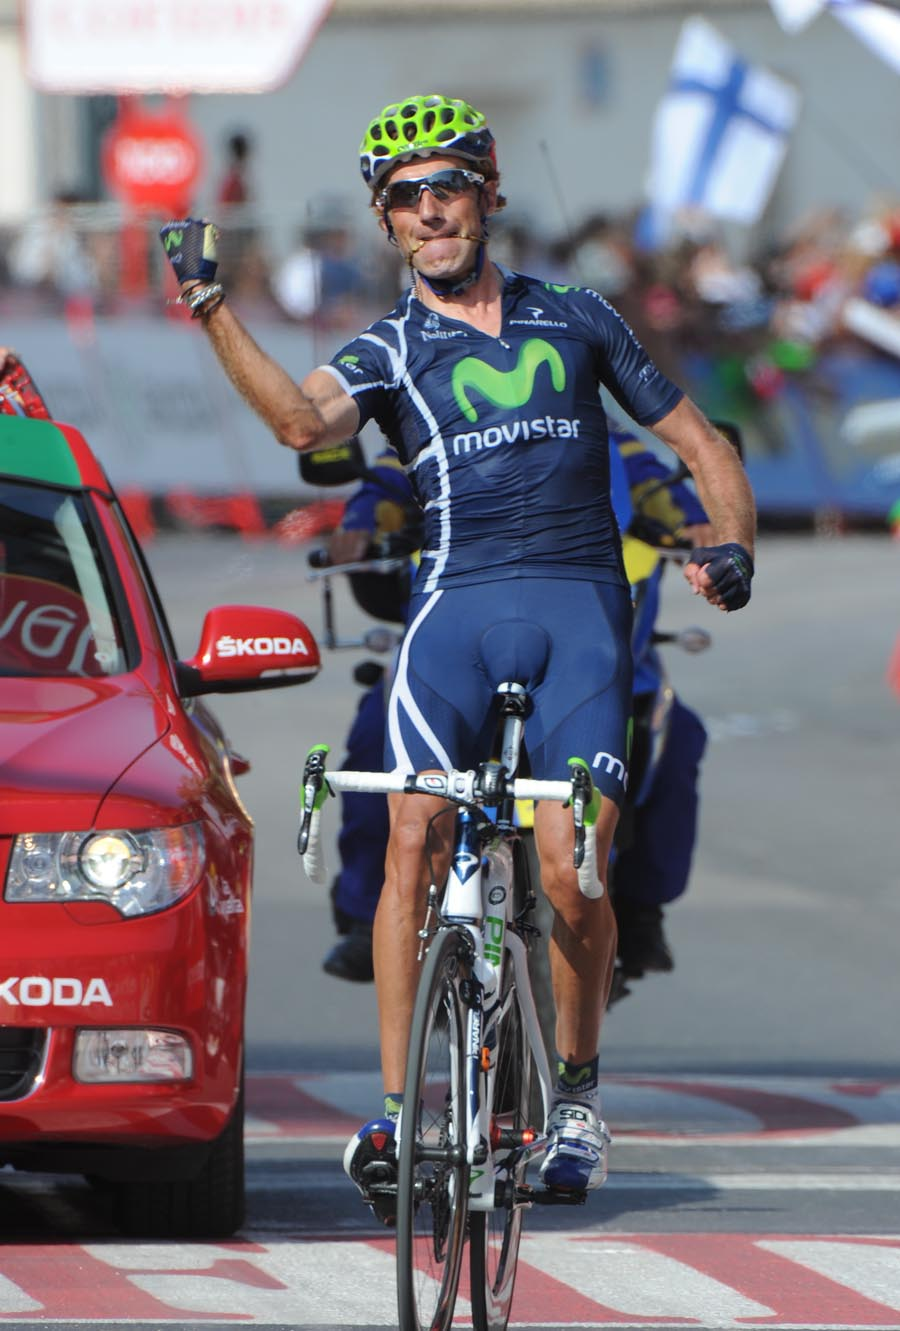 Pablo Lastras wins, Vuelta a Espana 2011, stage three